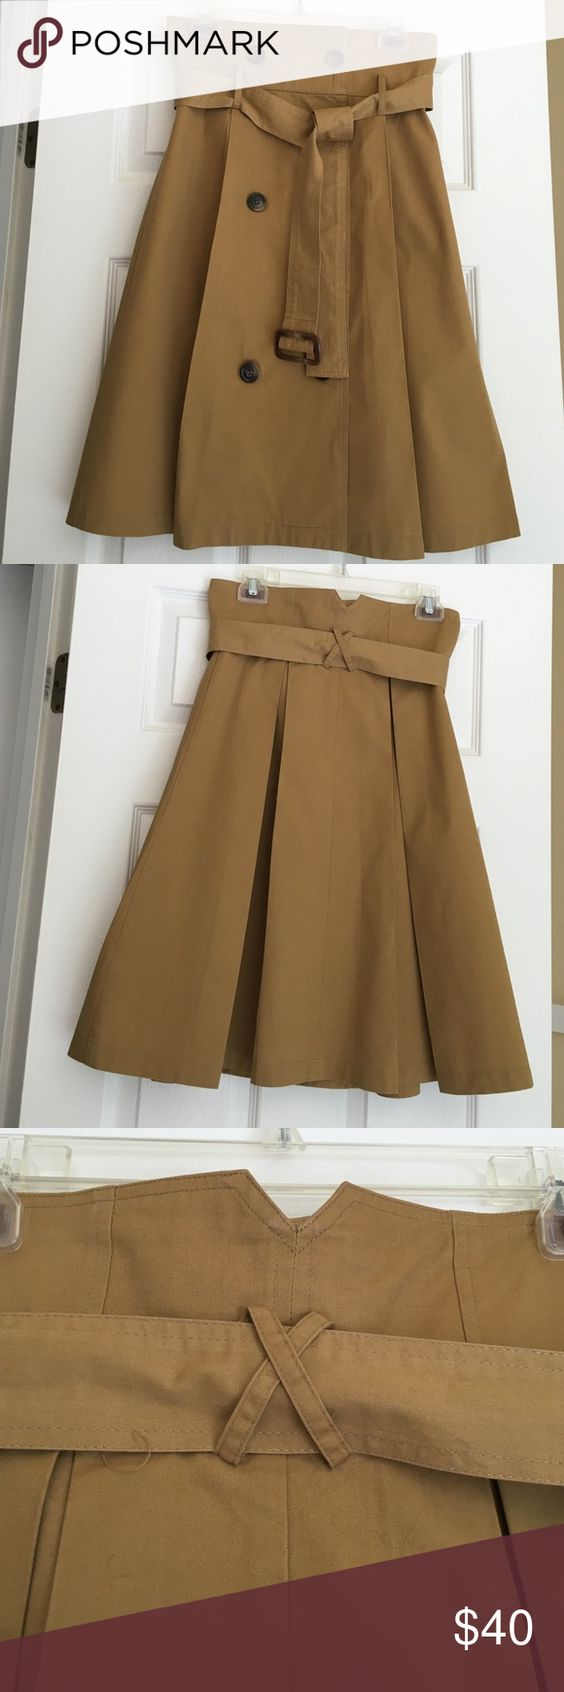 "Trench Inspired Skirt Trench Inspired Khaki Style Skirt. Length 26"". Skirts"